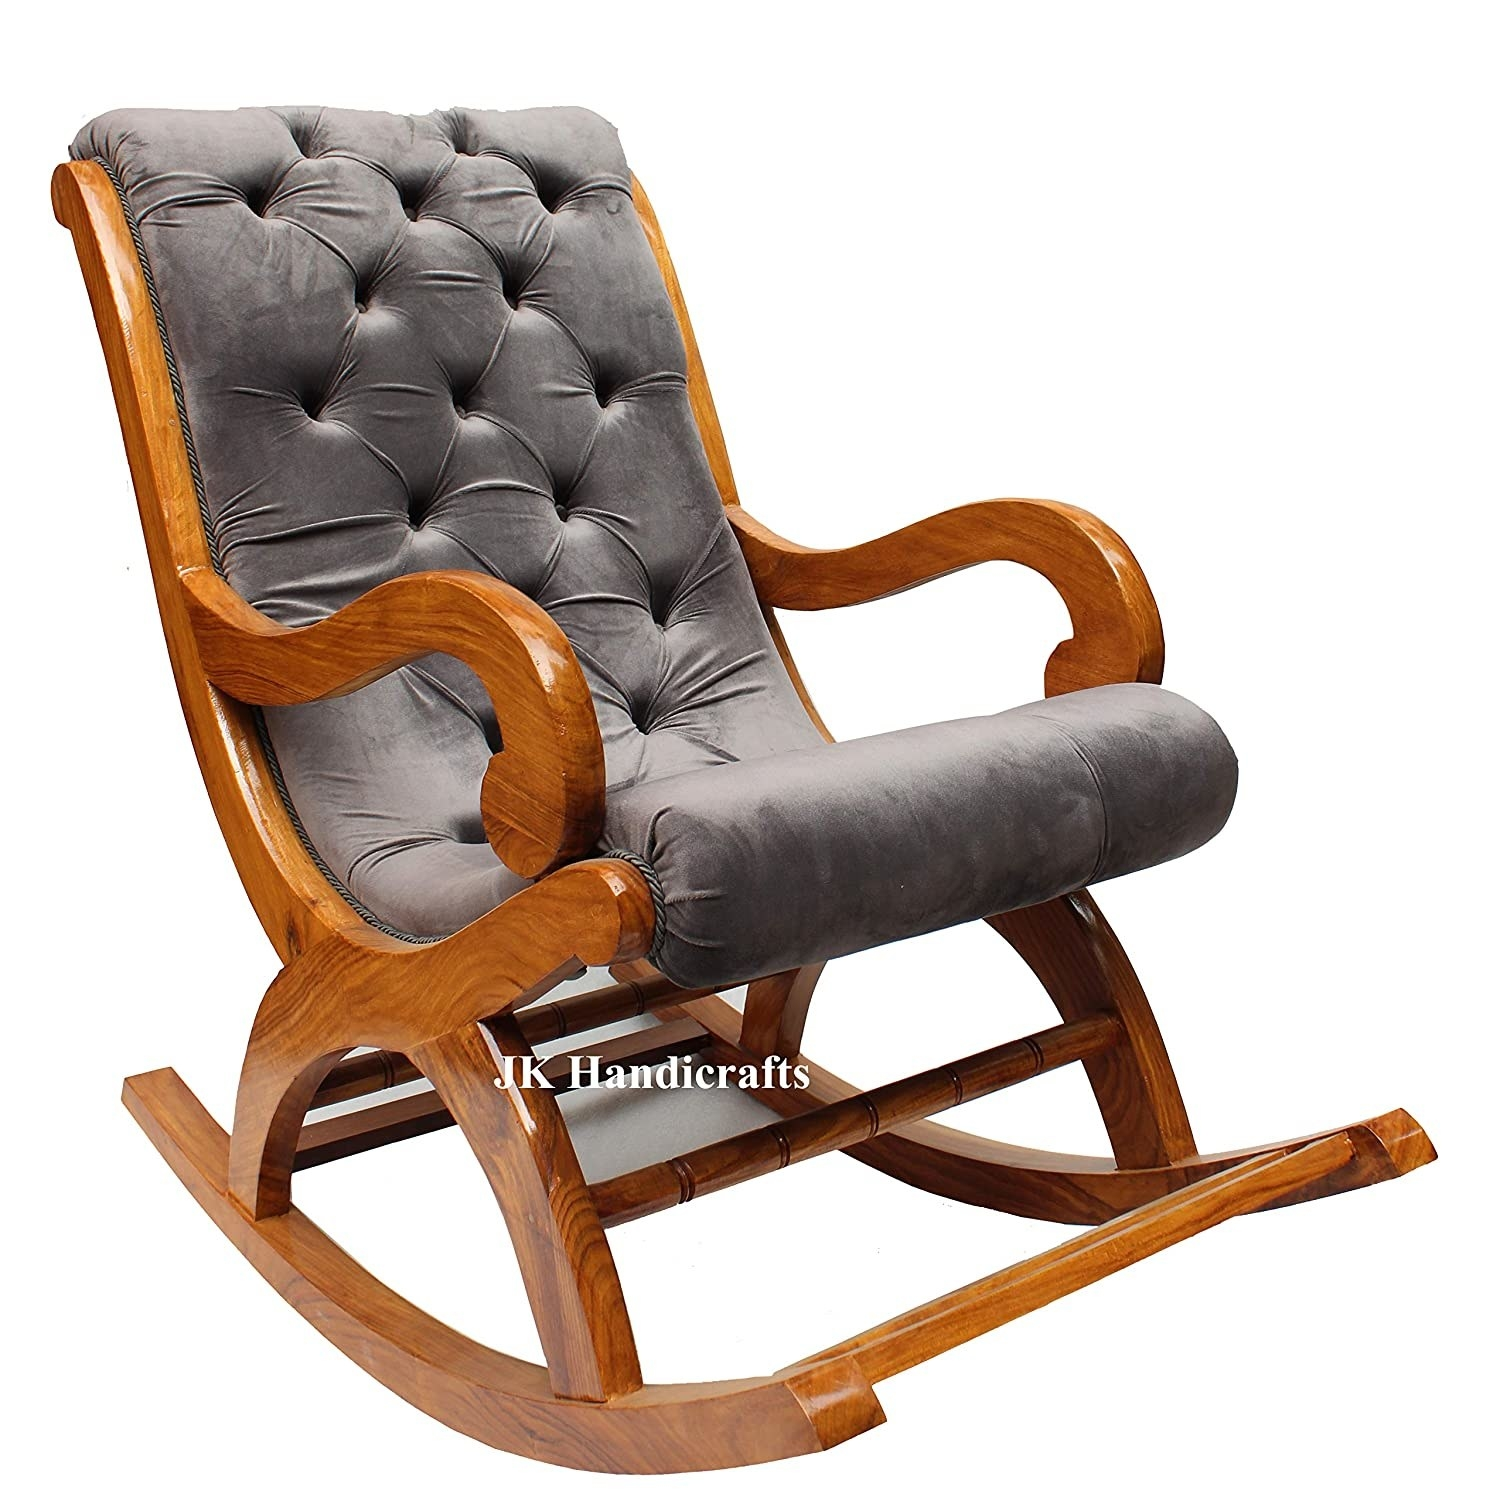 A grey rocking chair with wooden fittings